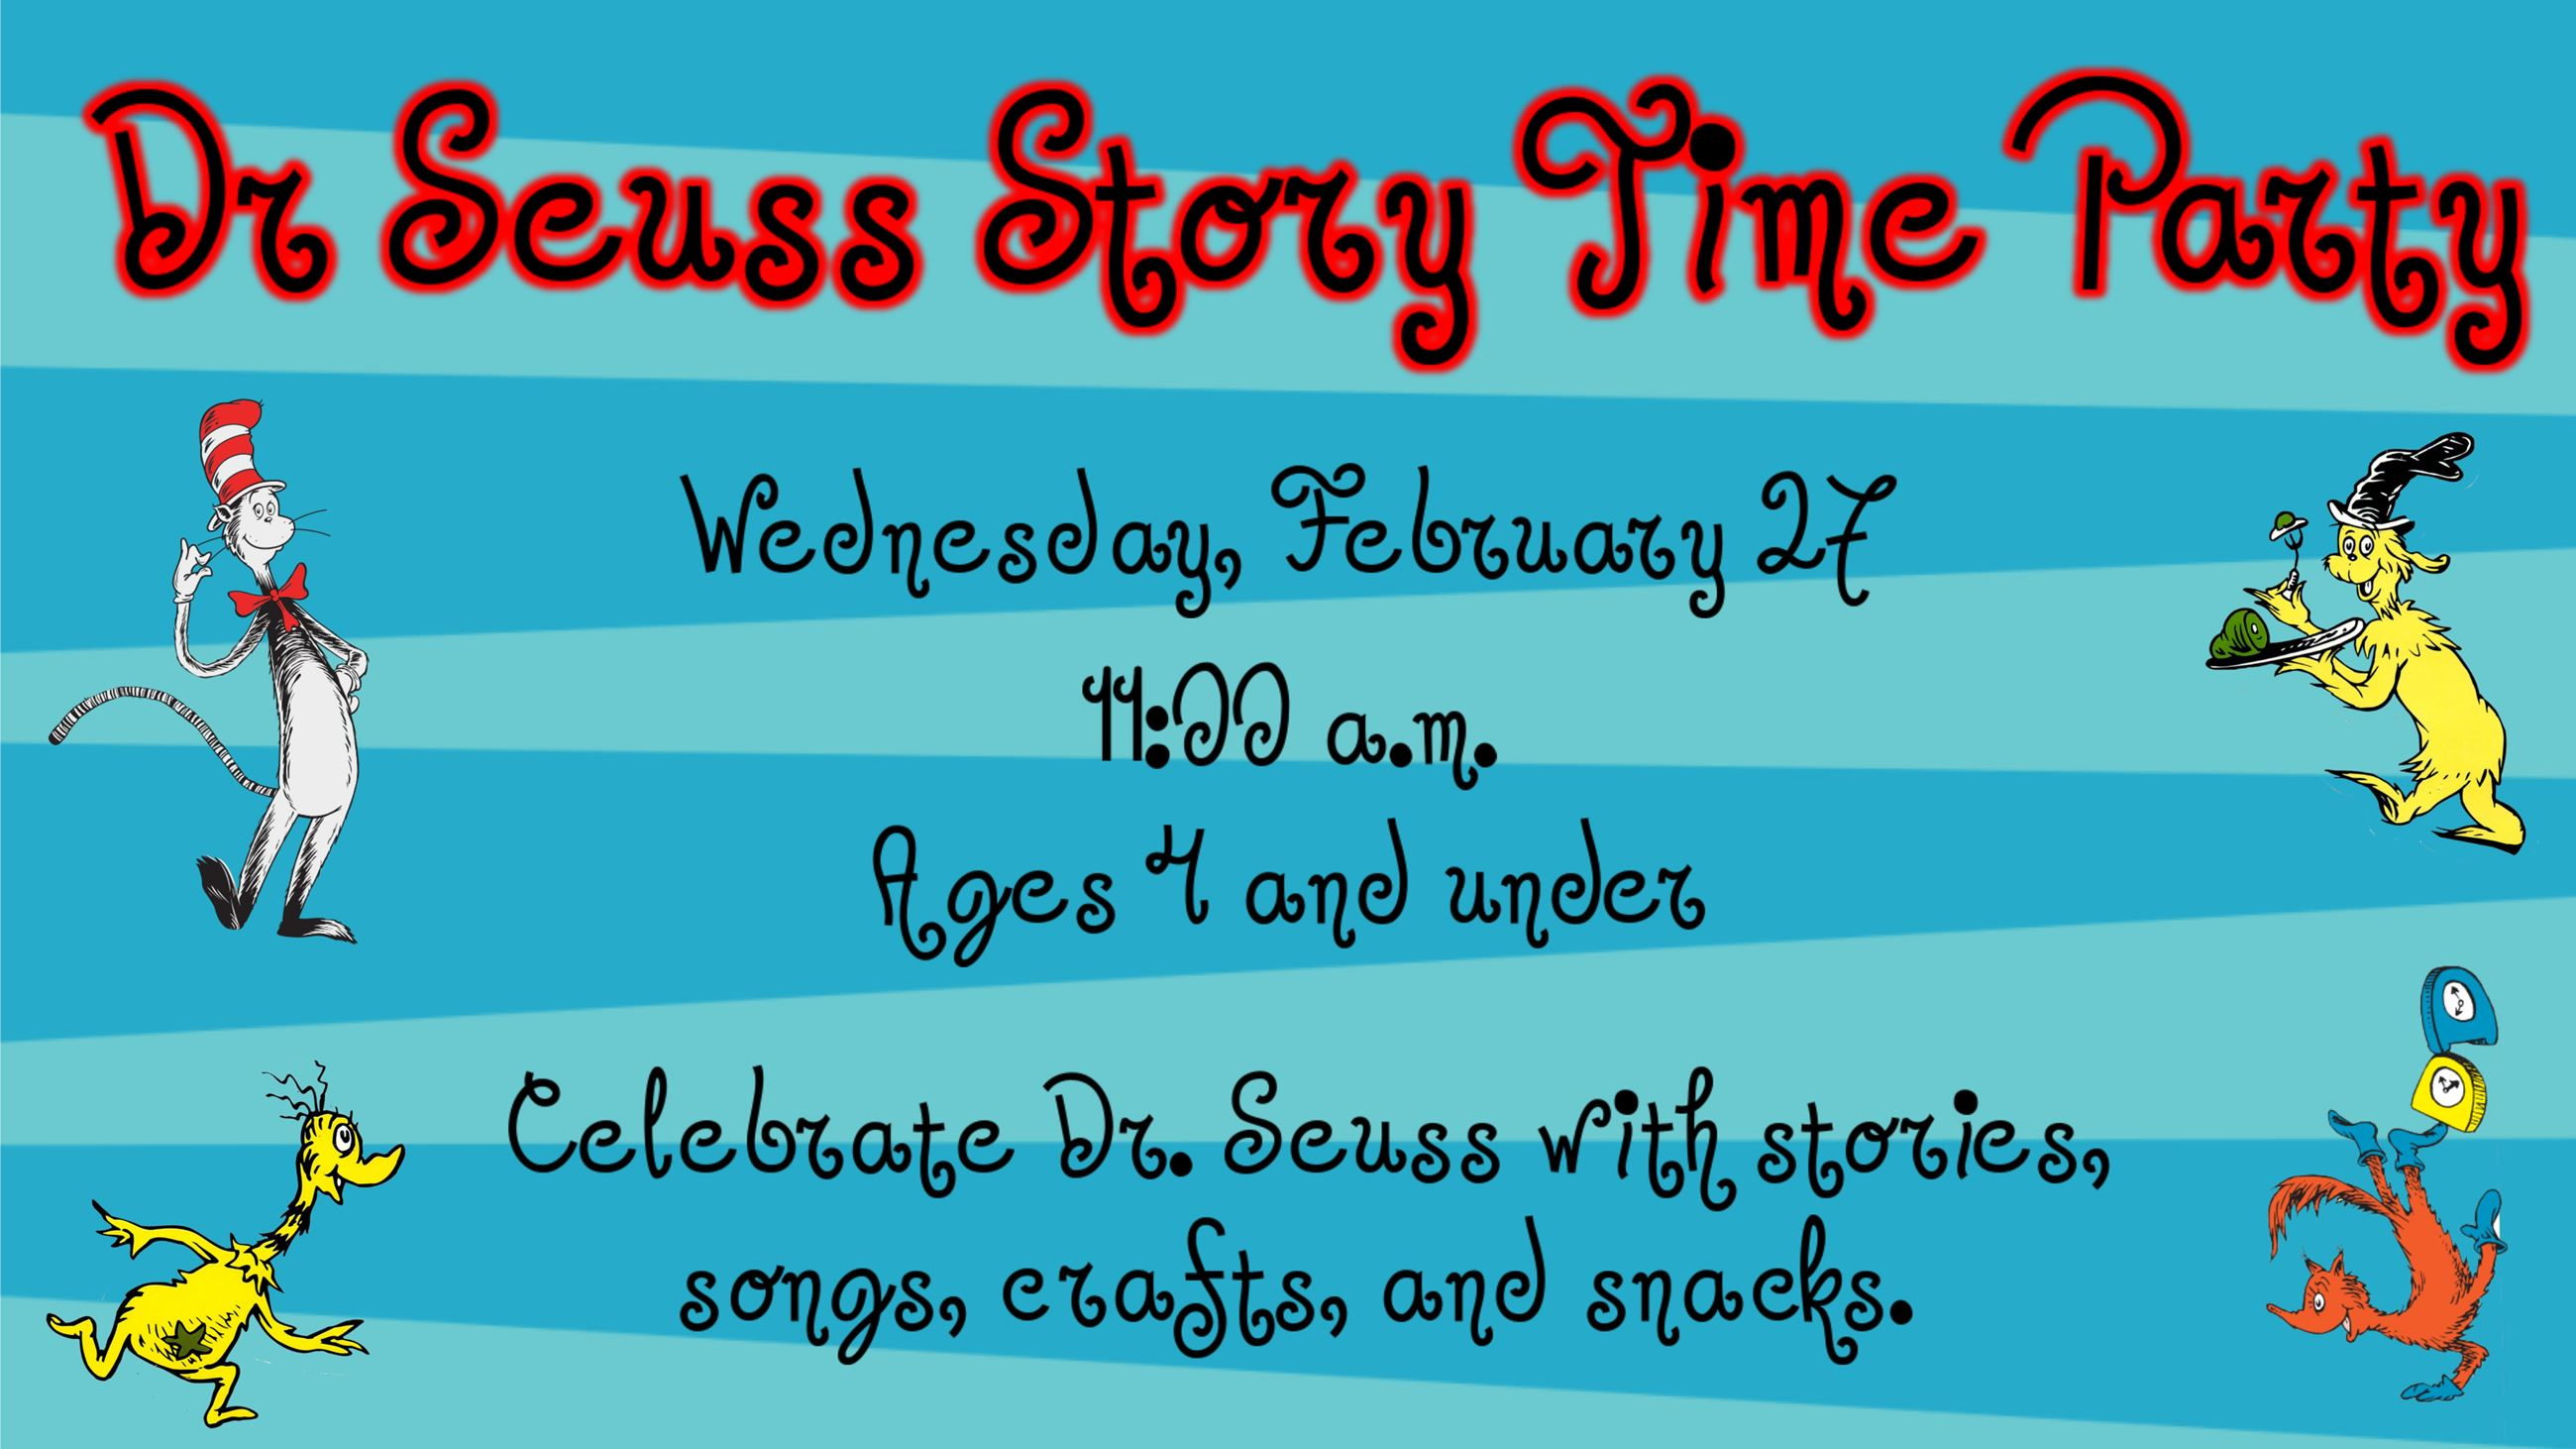 Dr Seuss Story Time Party. February 27 @ 11:00 a.m. Ages 4 & under.